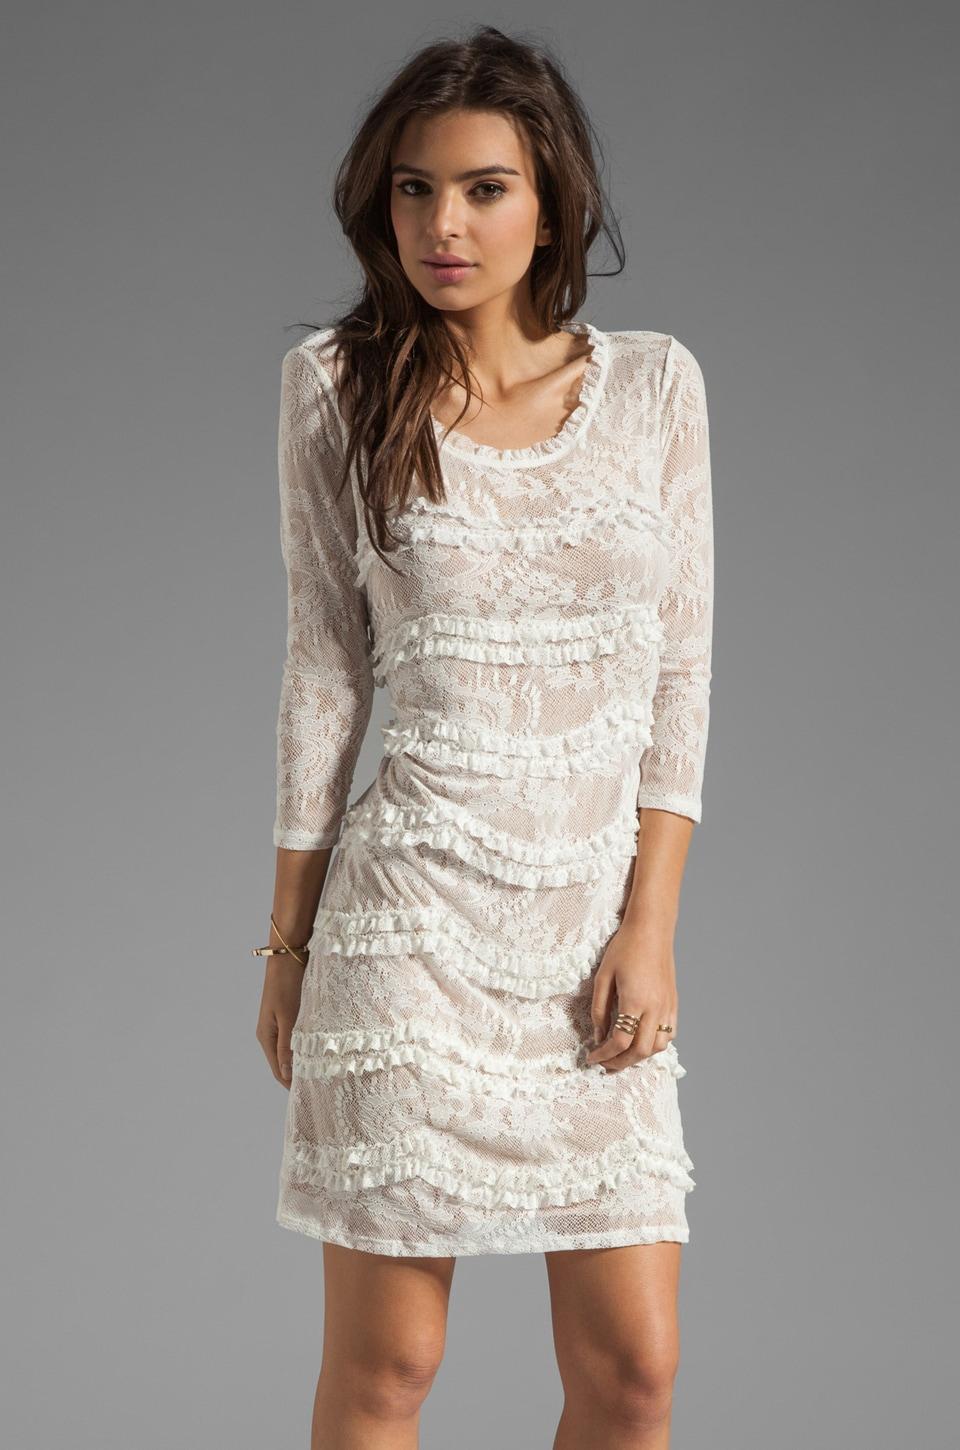 Graham & Spencer Paisley Lace Elbow Sleeve Dress in White